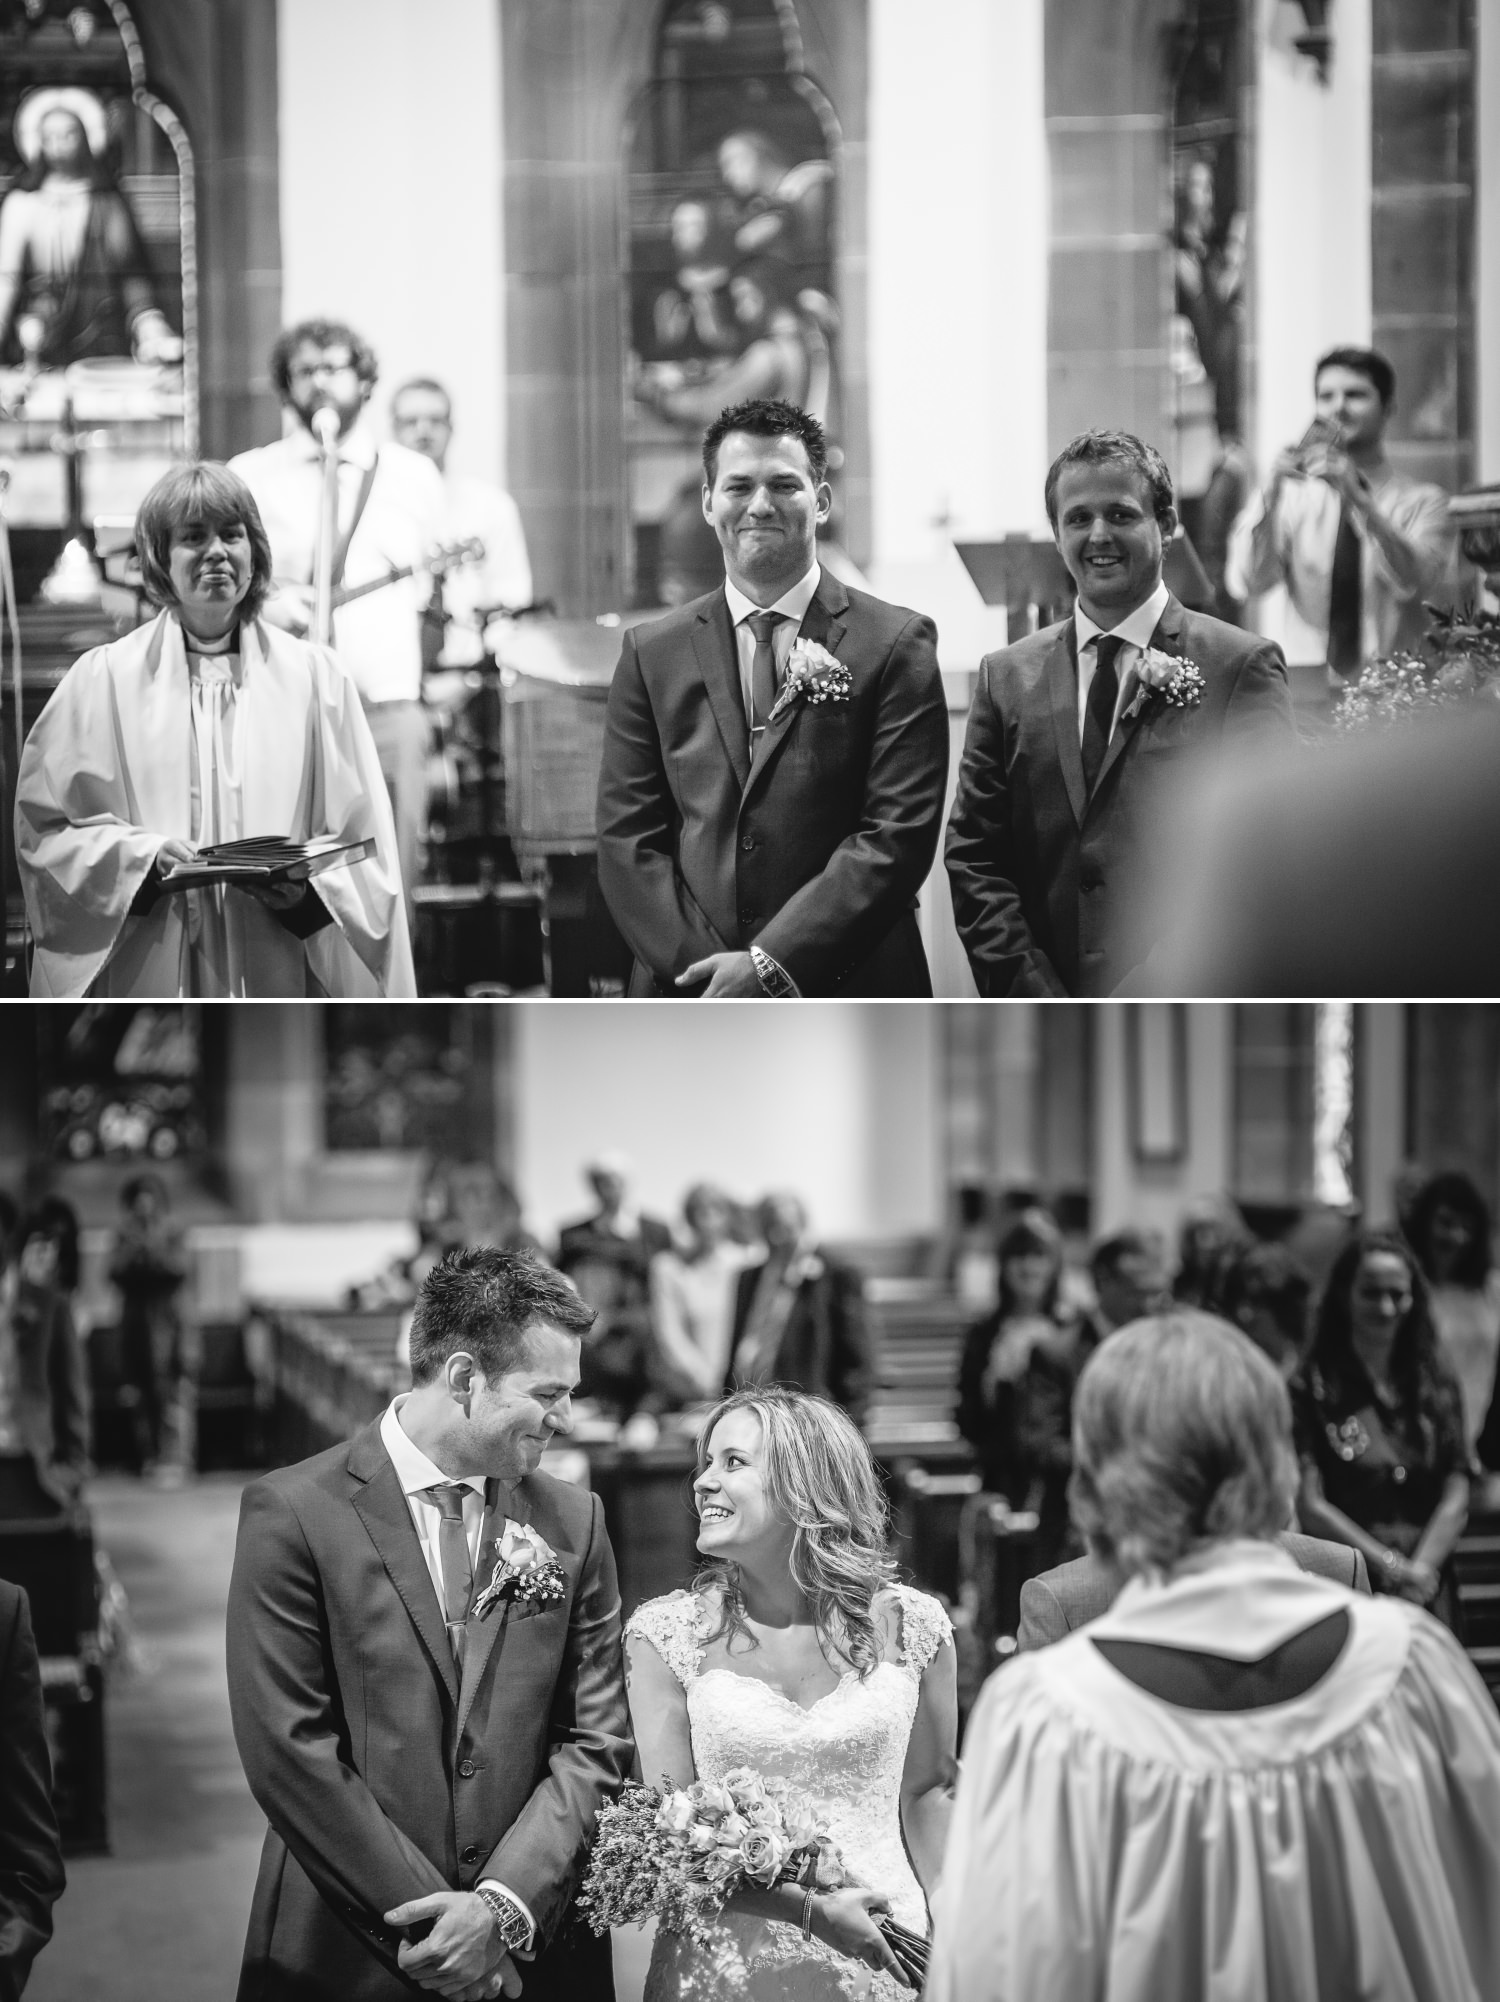 Wedding ceremony photography at St Mary Church, Upton in the Wirral